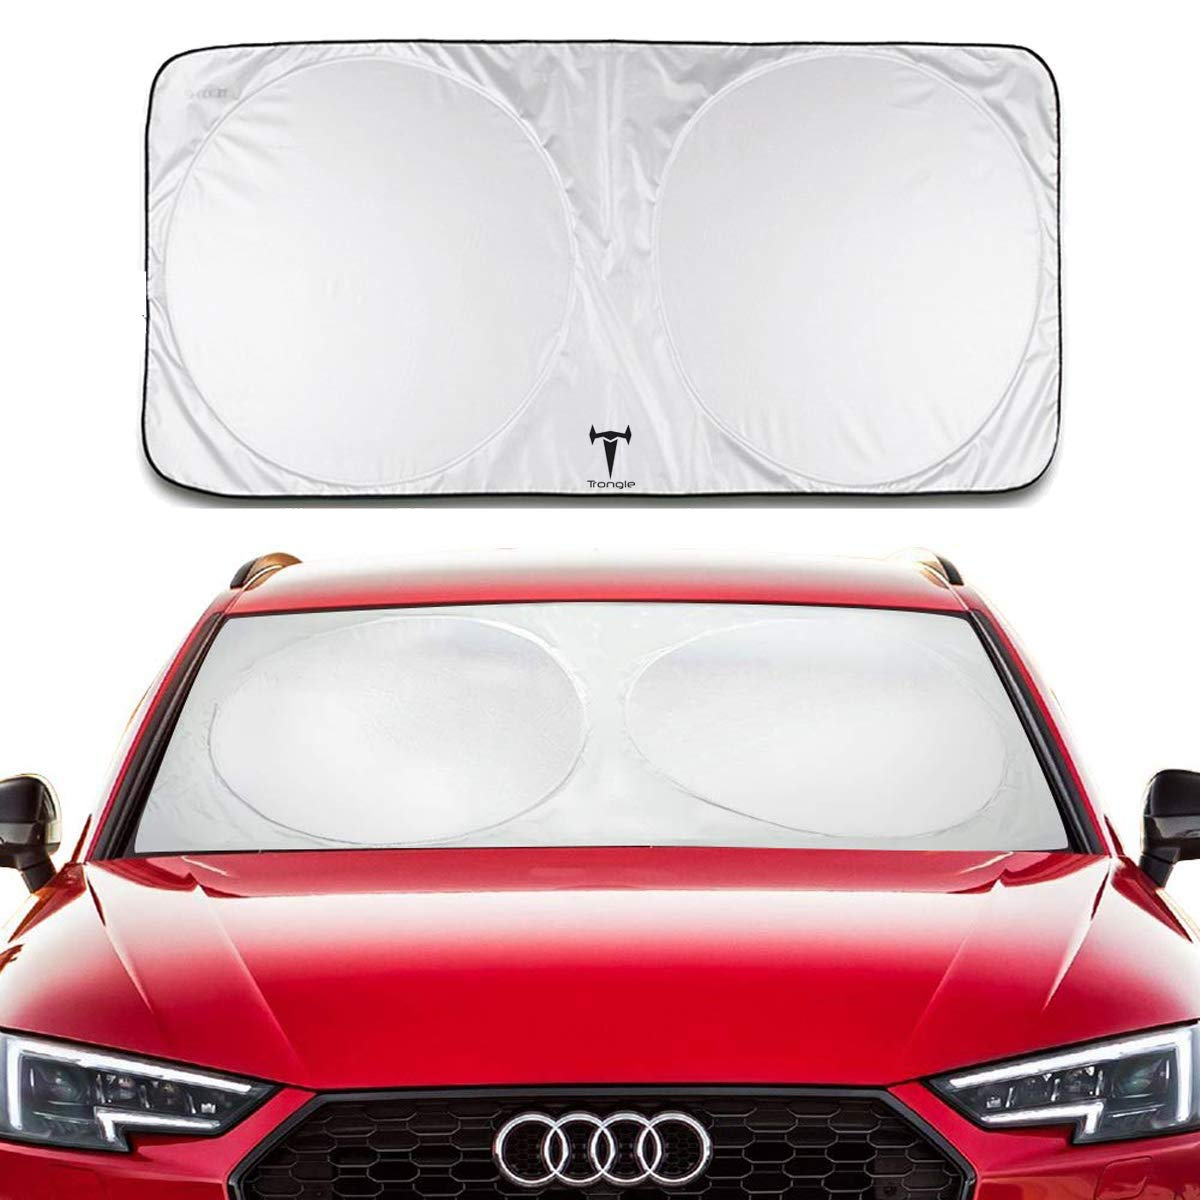 SANTOO Retractable Car Windscreen Sunshade for Windshield Front Window Sun Shade UV Protection,Cover 97/%